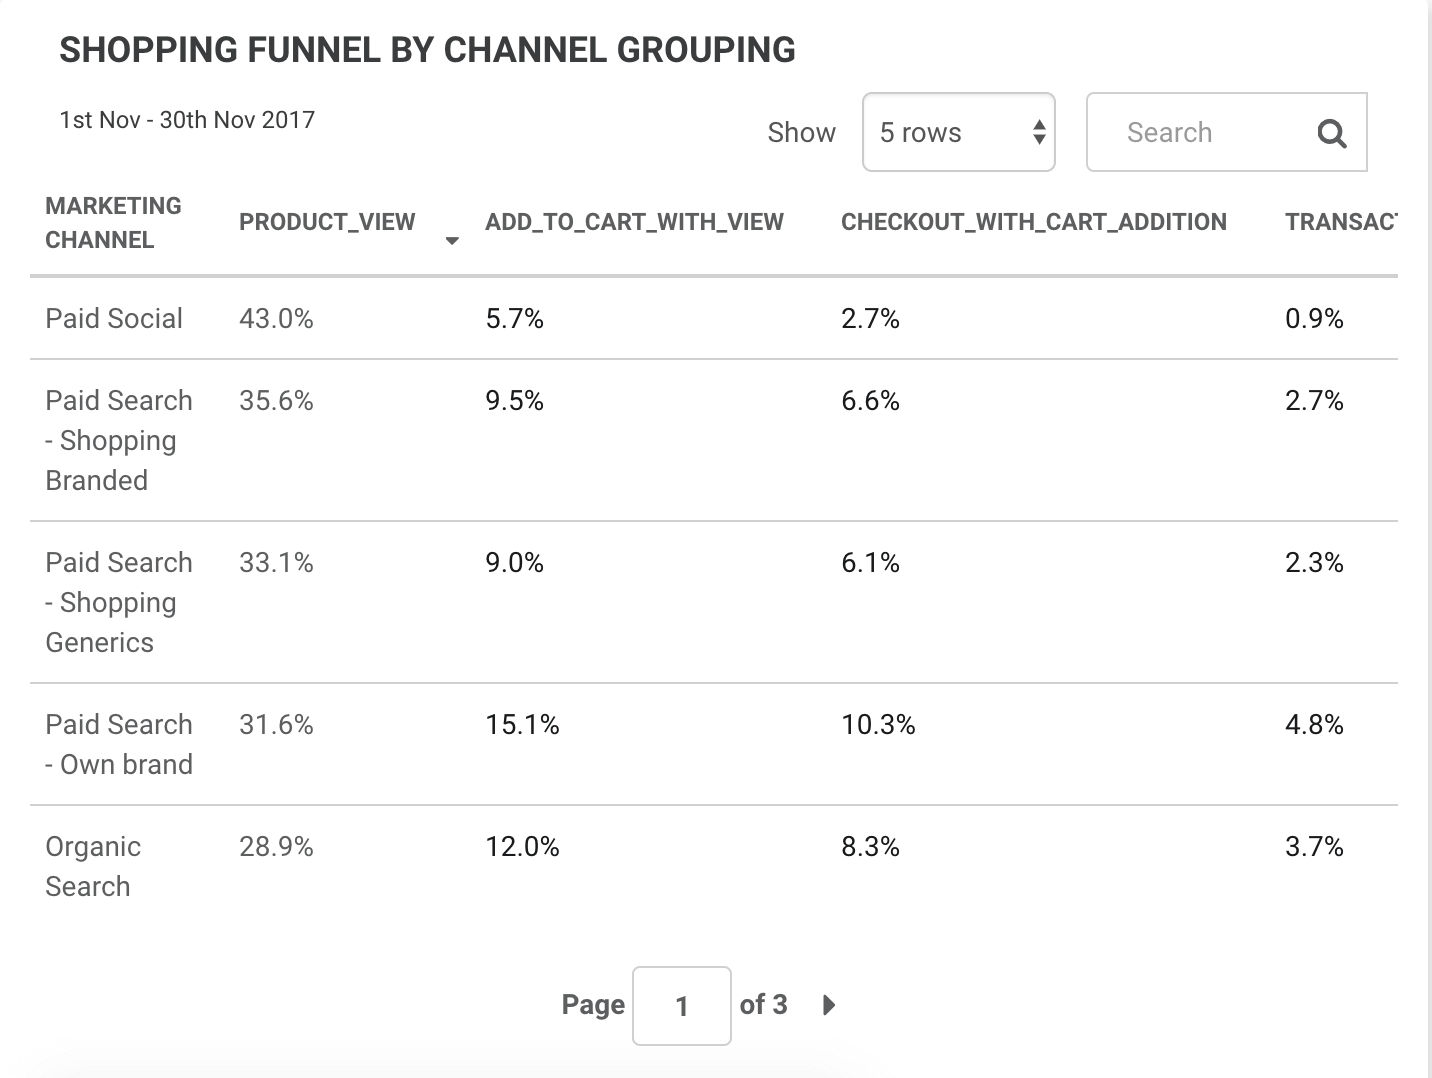 SHOPPING FUNNEL BY CHANNEL GROUPING